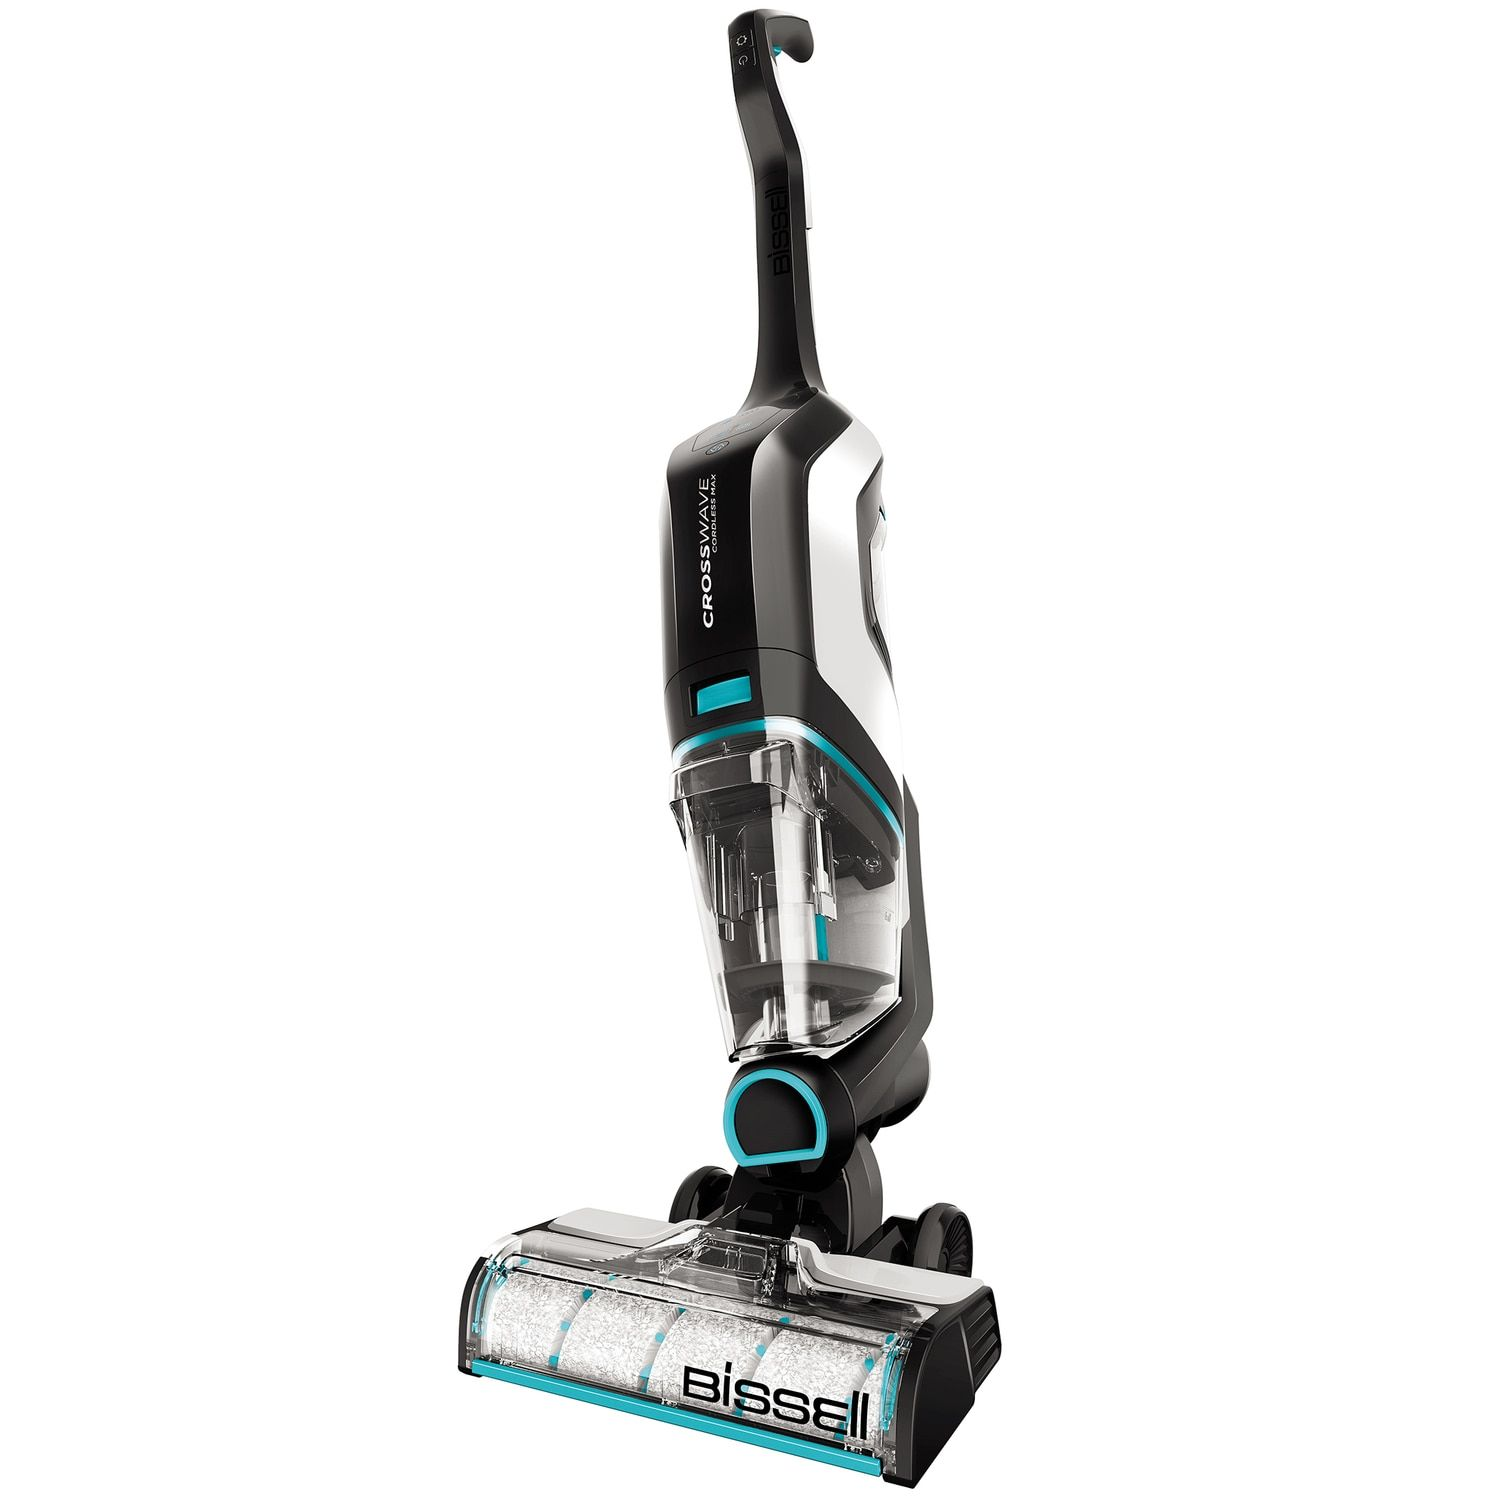 Bissell Crosswave Cordless Max Floor And Carpet Cleaner With Wet Dry Vacuum In 2020 Wet Dry Vacuum Carpet Cleaners Wet And Dry